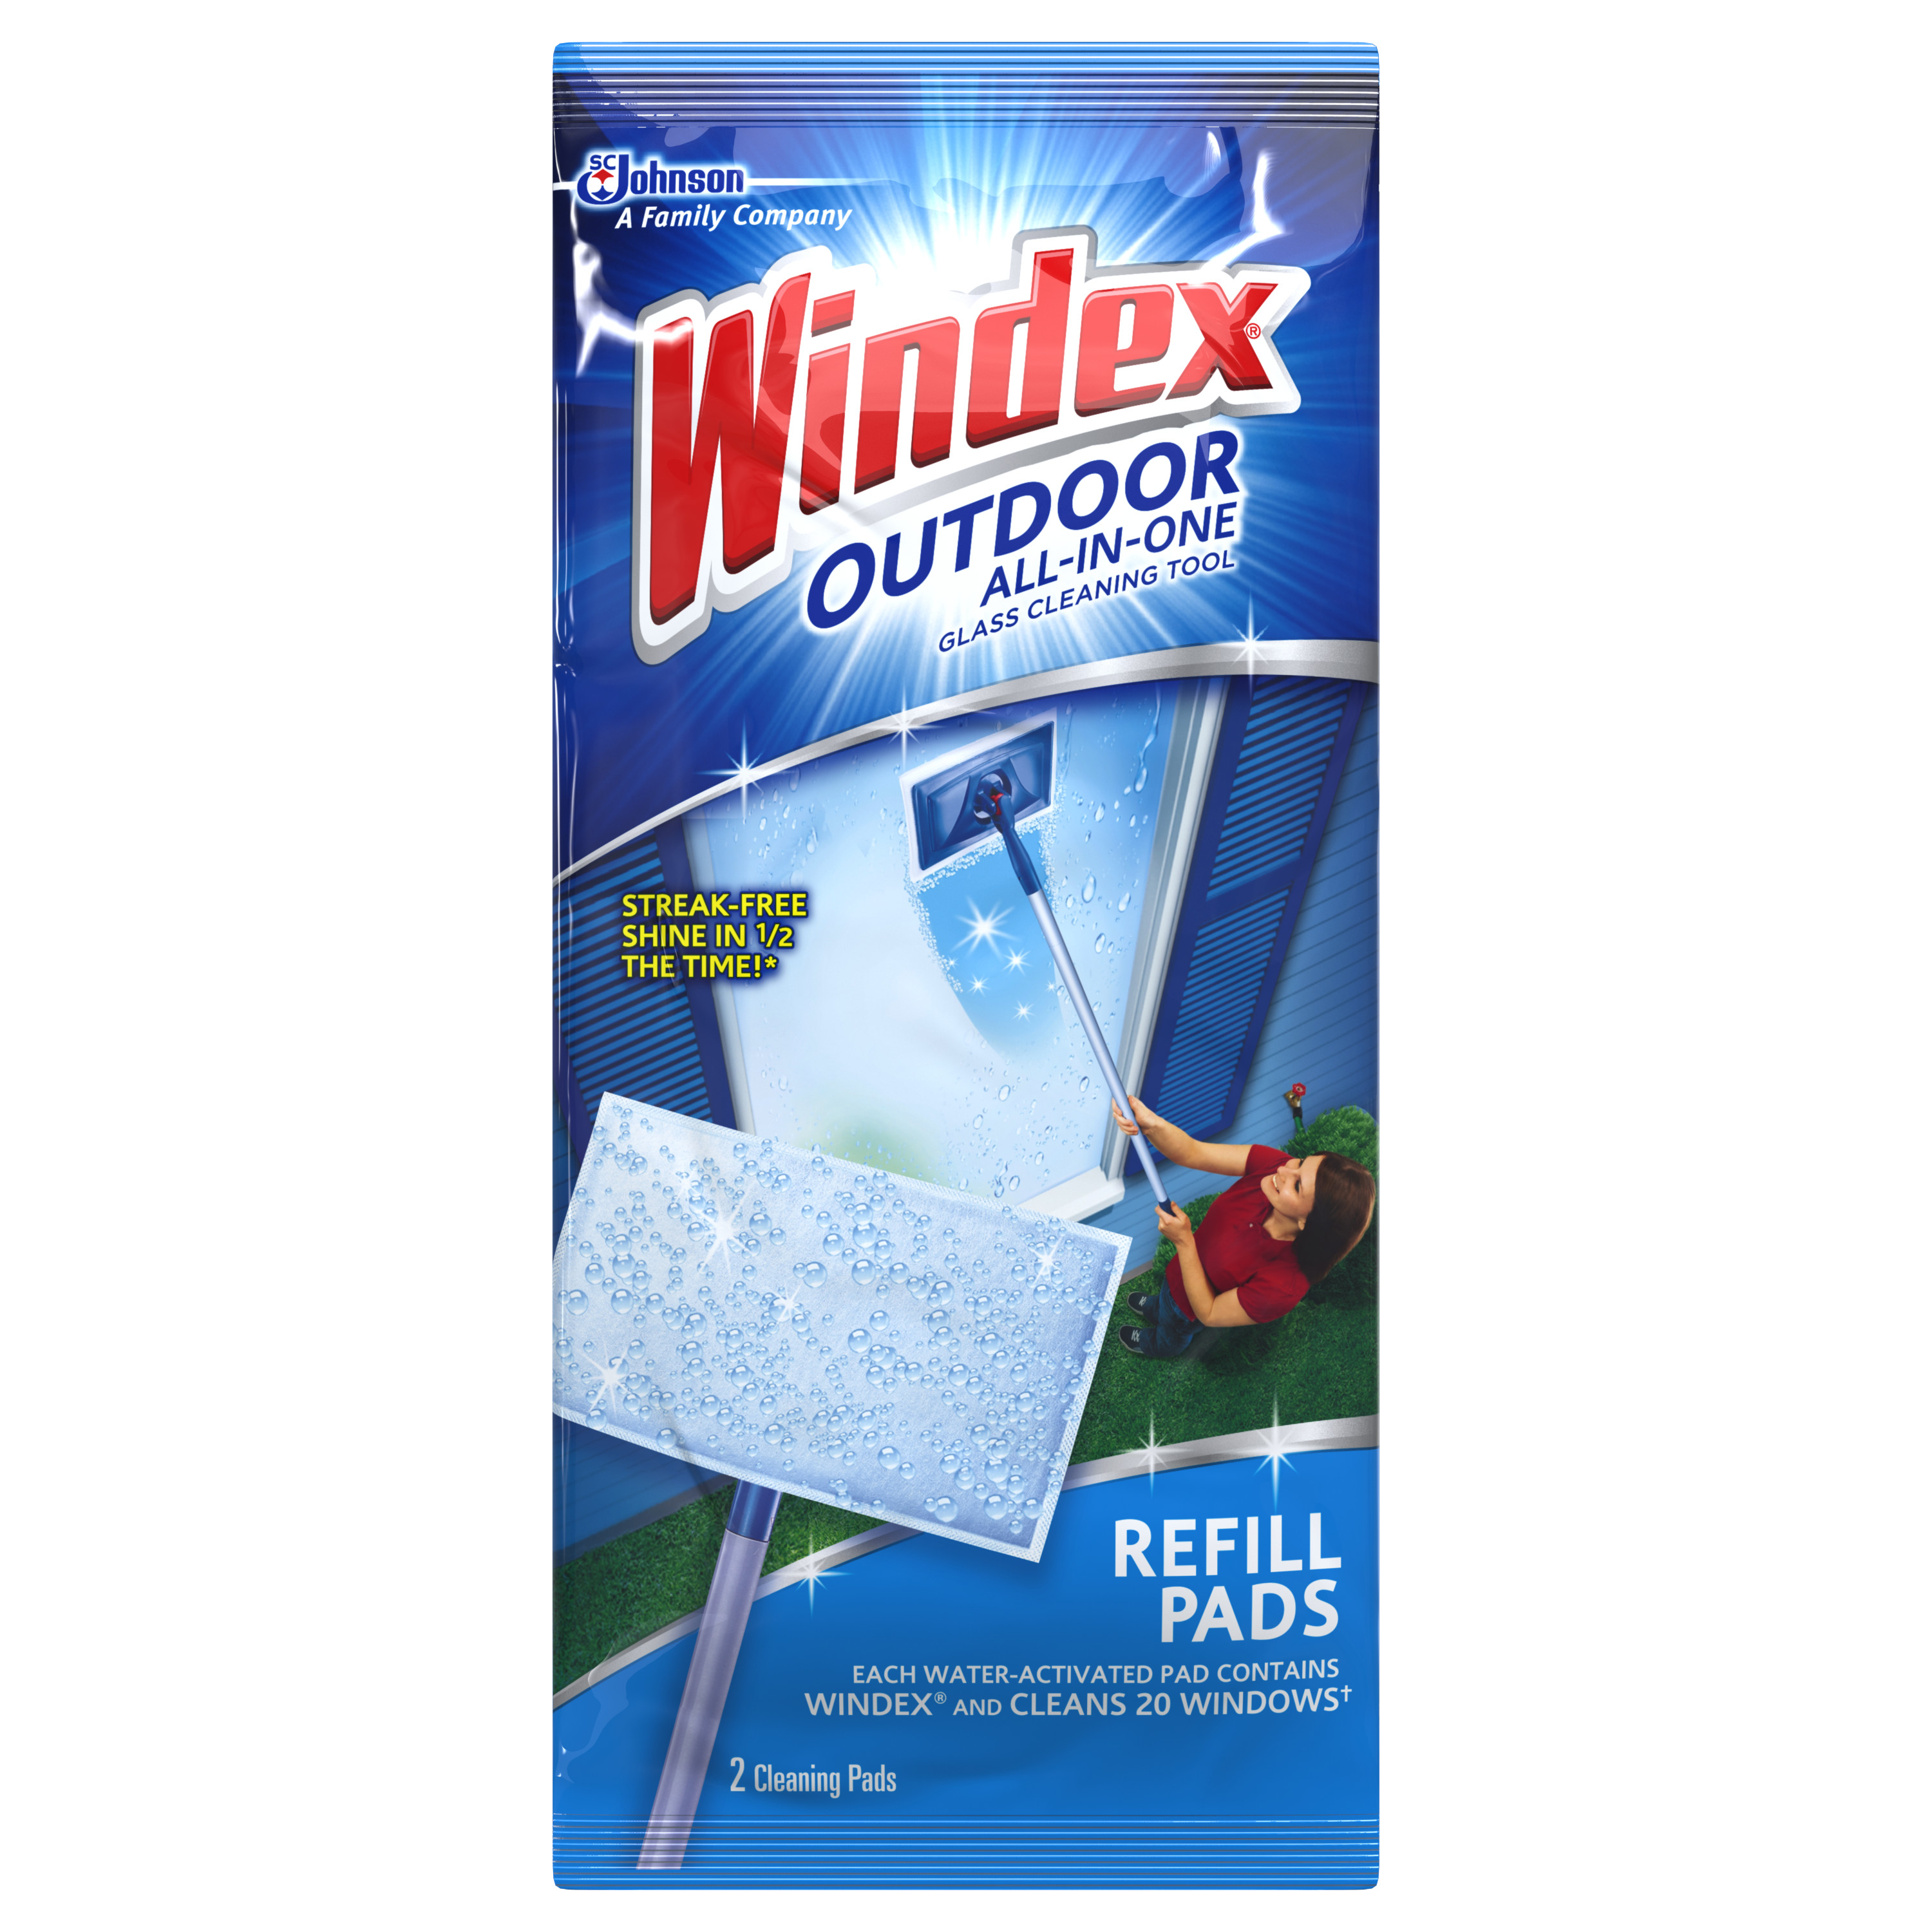 Windex Outdoor All-in-One Refill 2 count